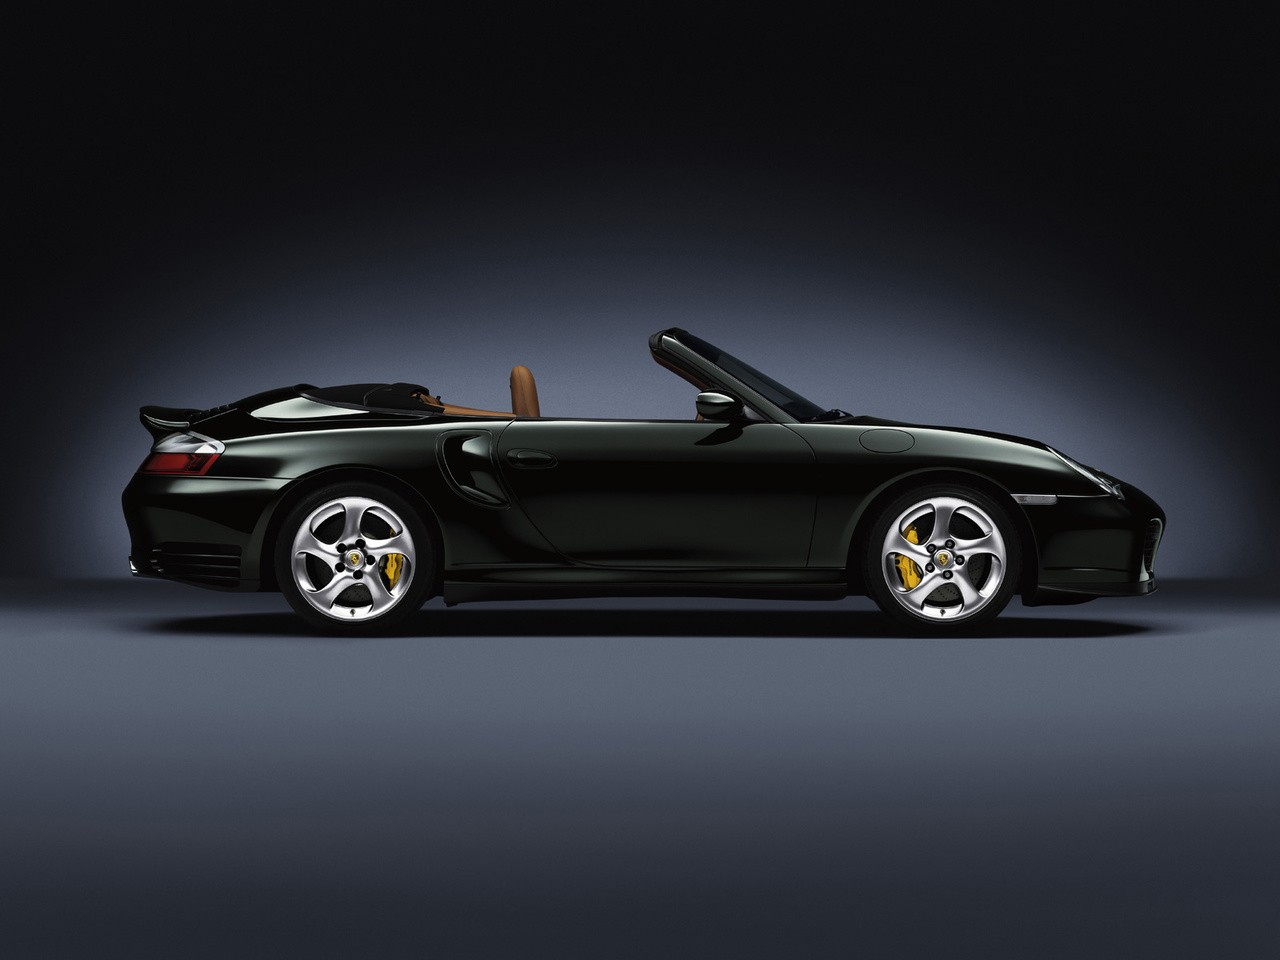 PORSCHE 911 Turbo S Cabriolet 996 Specs Amp Photos 2004